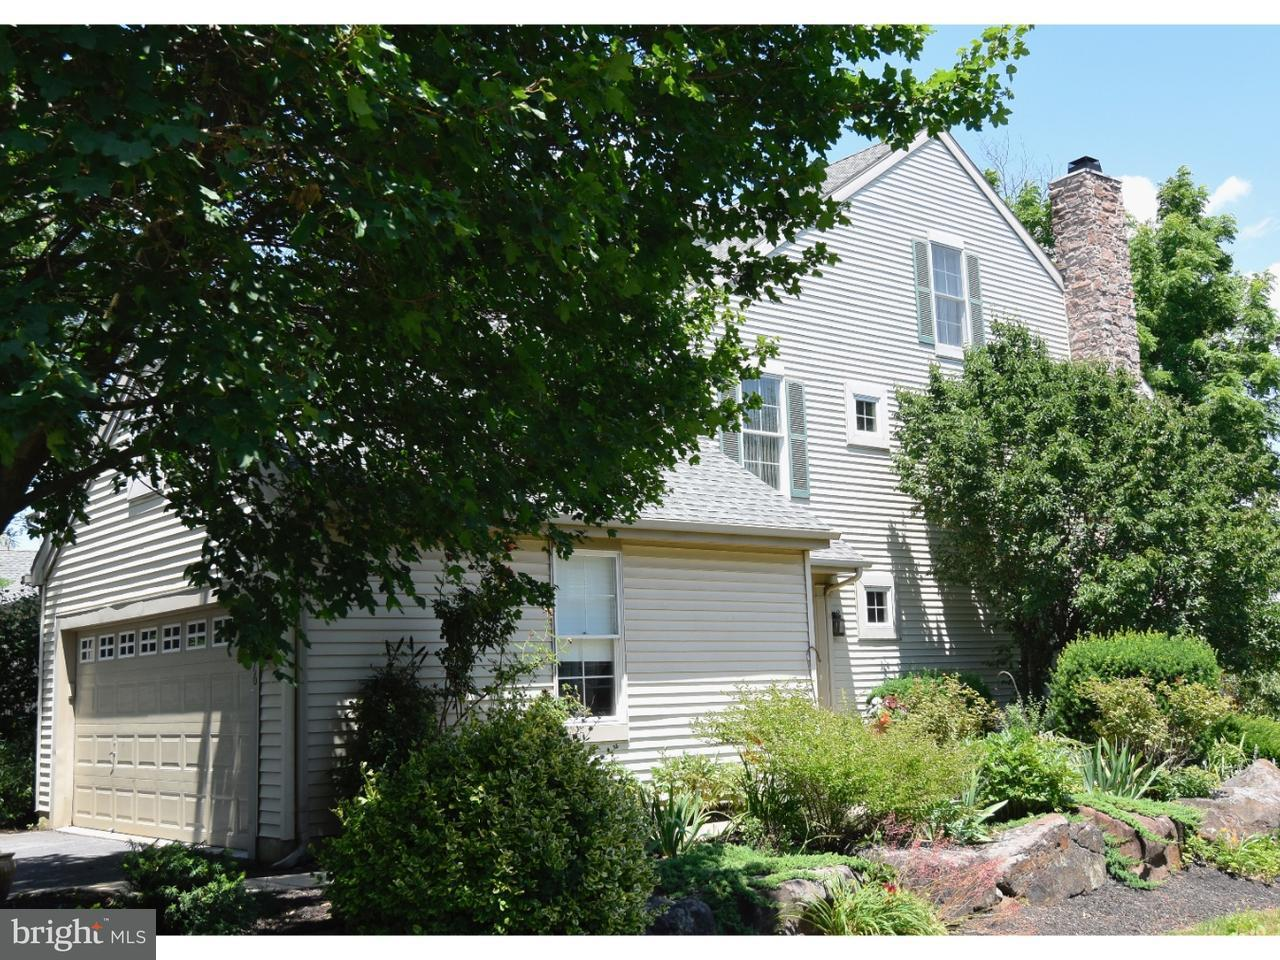 Townhouse for Sale at 1276 CRESTVIEW Drive Denver, Pennsylvania 17517 United States